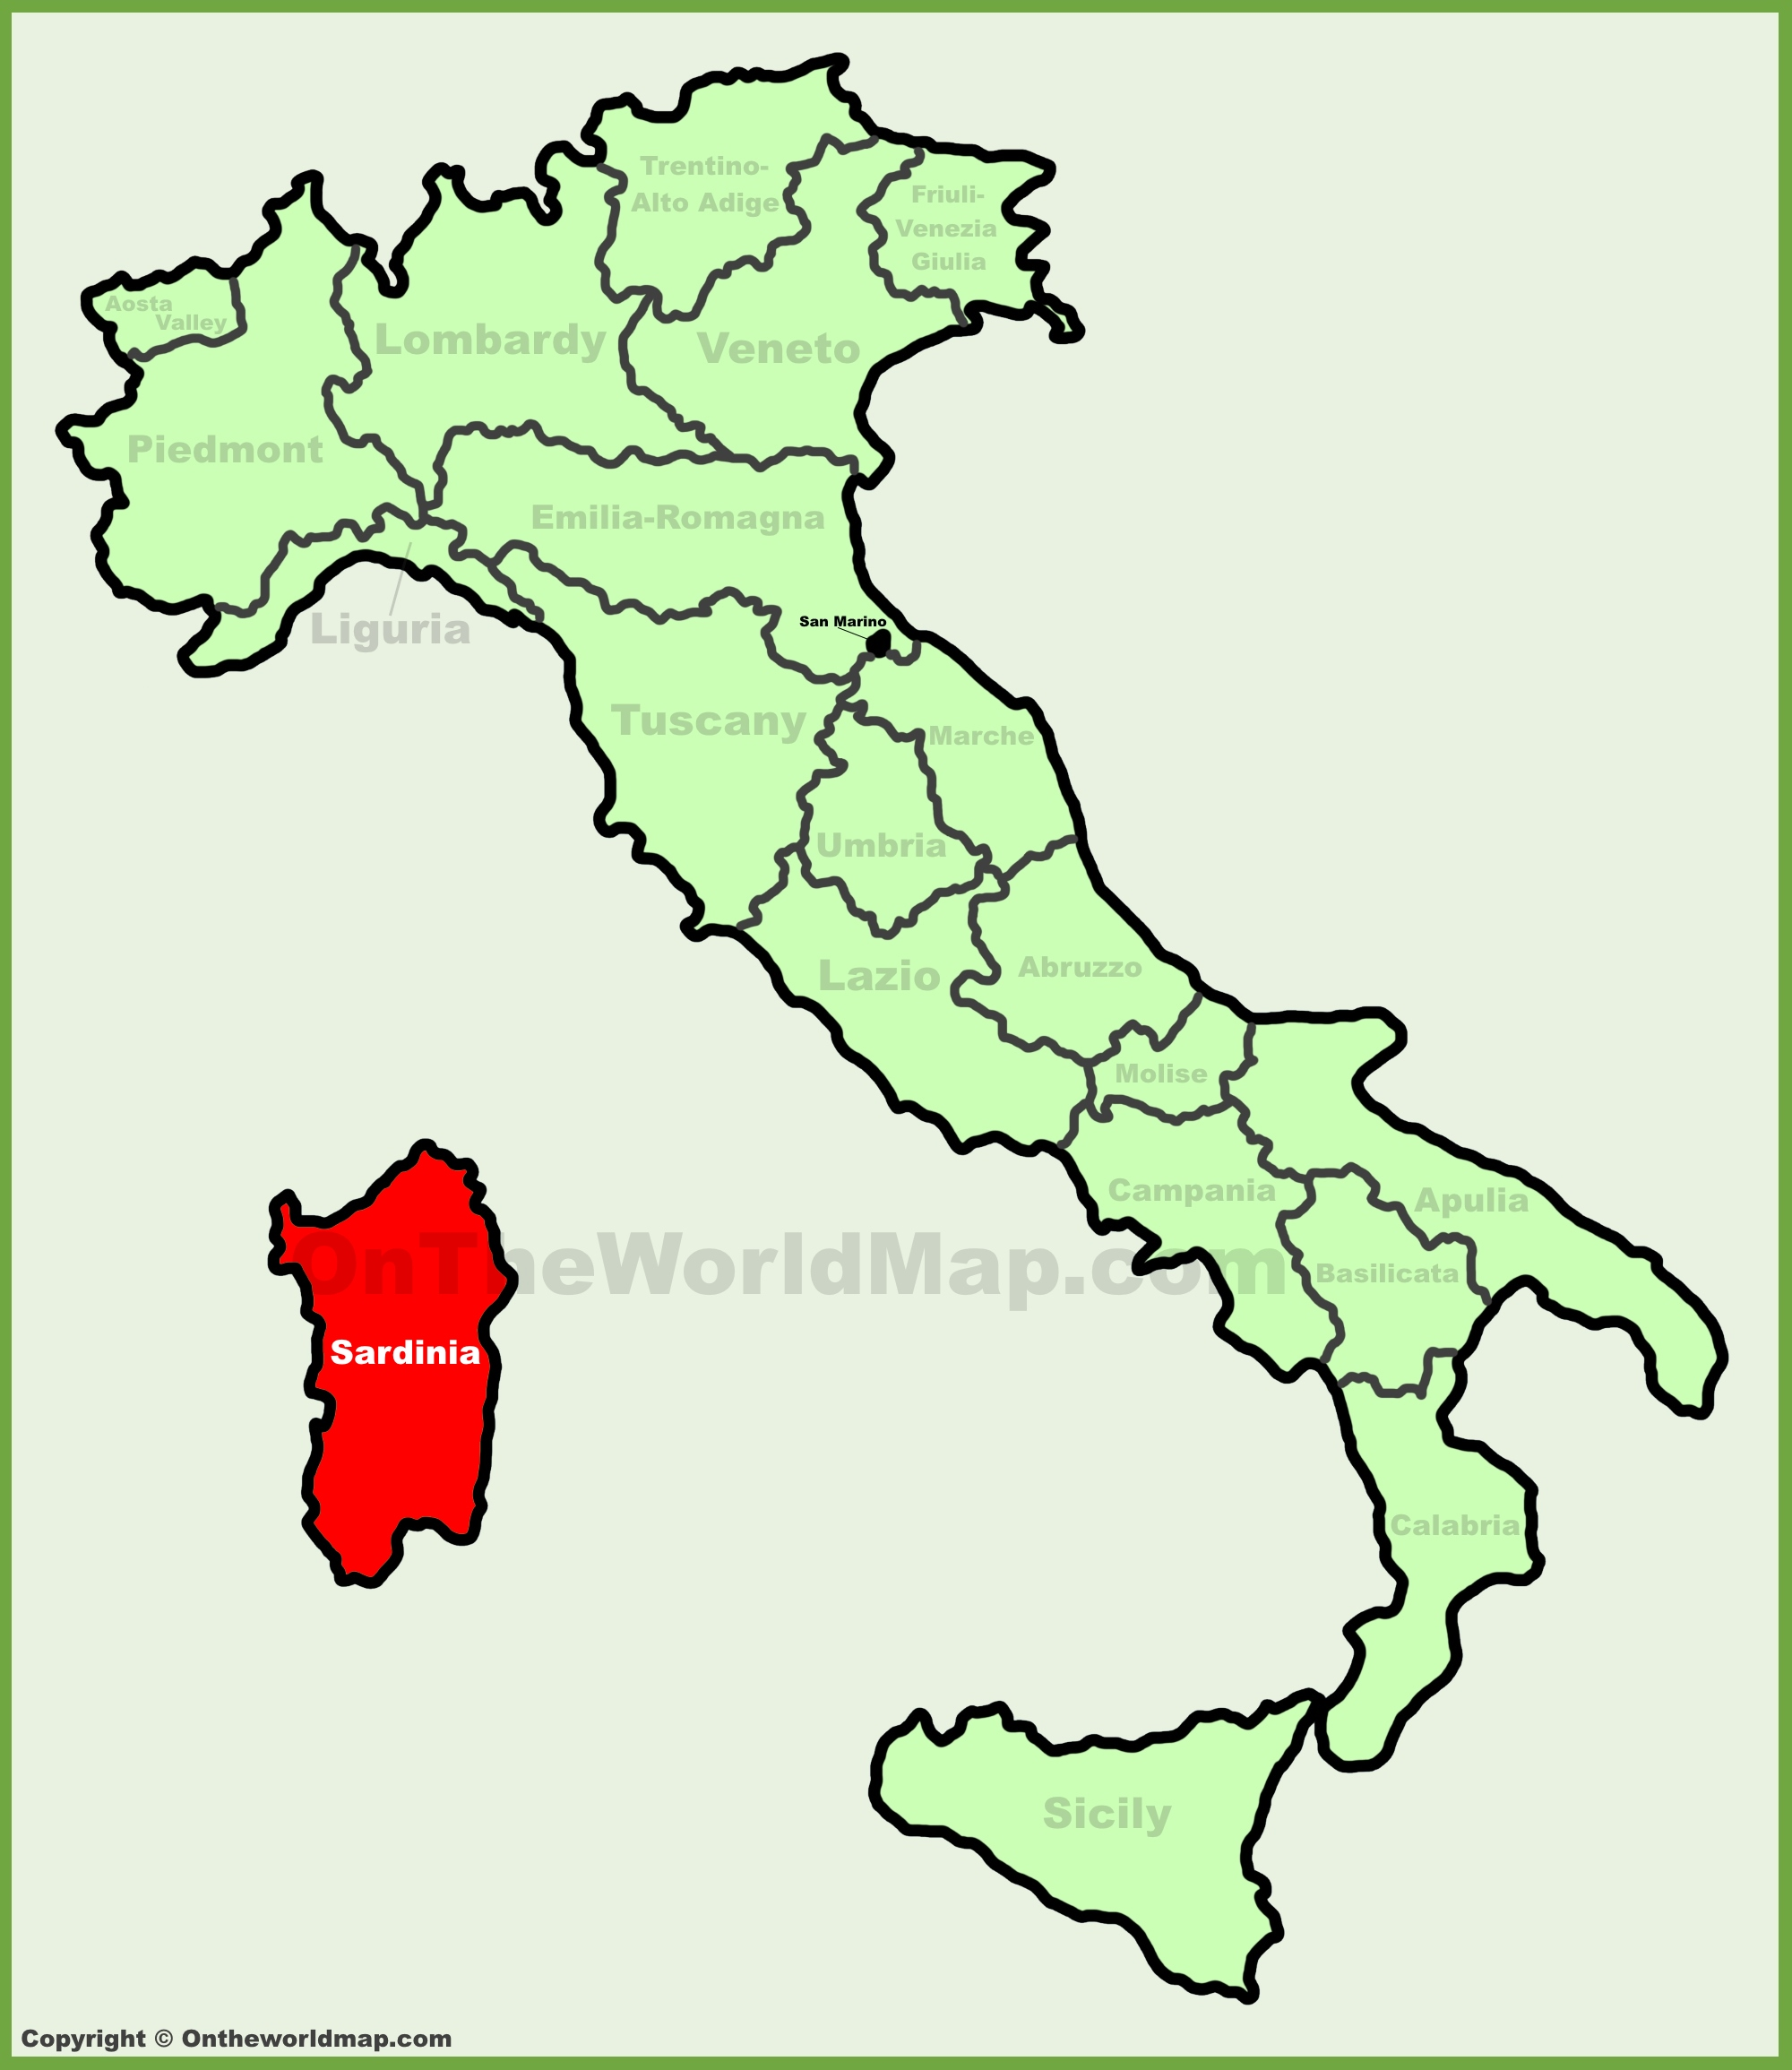 Sardinia location on the Italy map